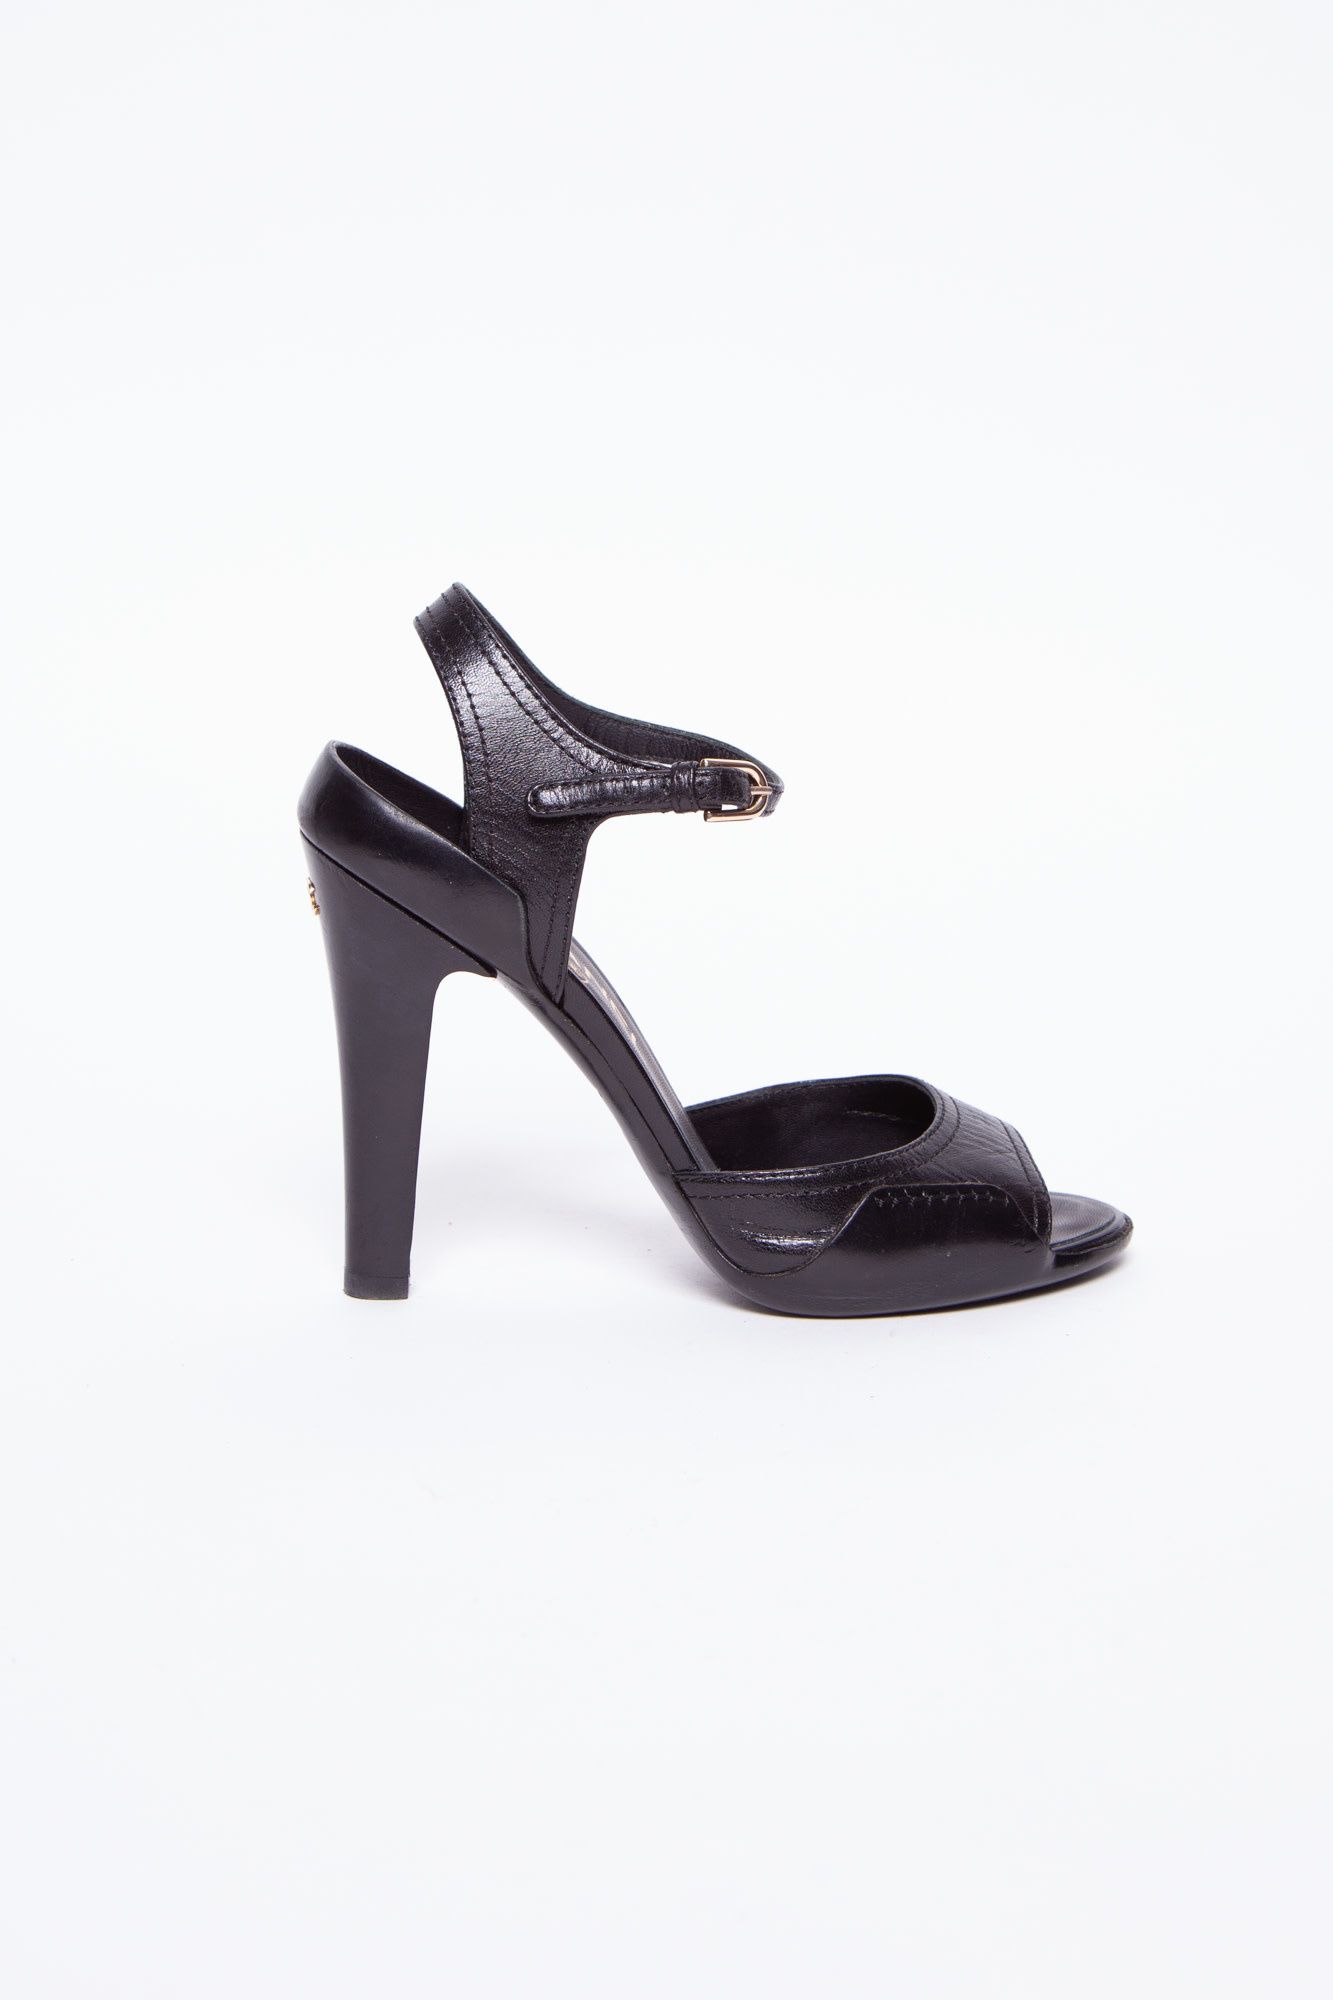 Chanel BLACK LEATHER HIGH HEELS SANDALS